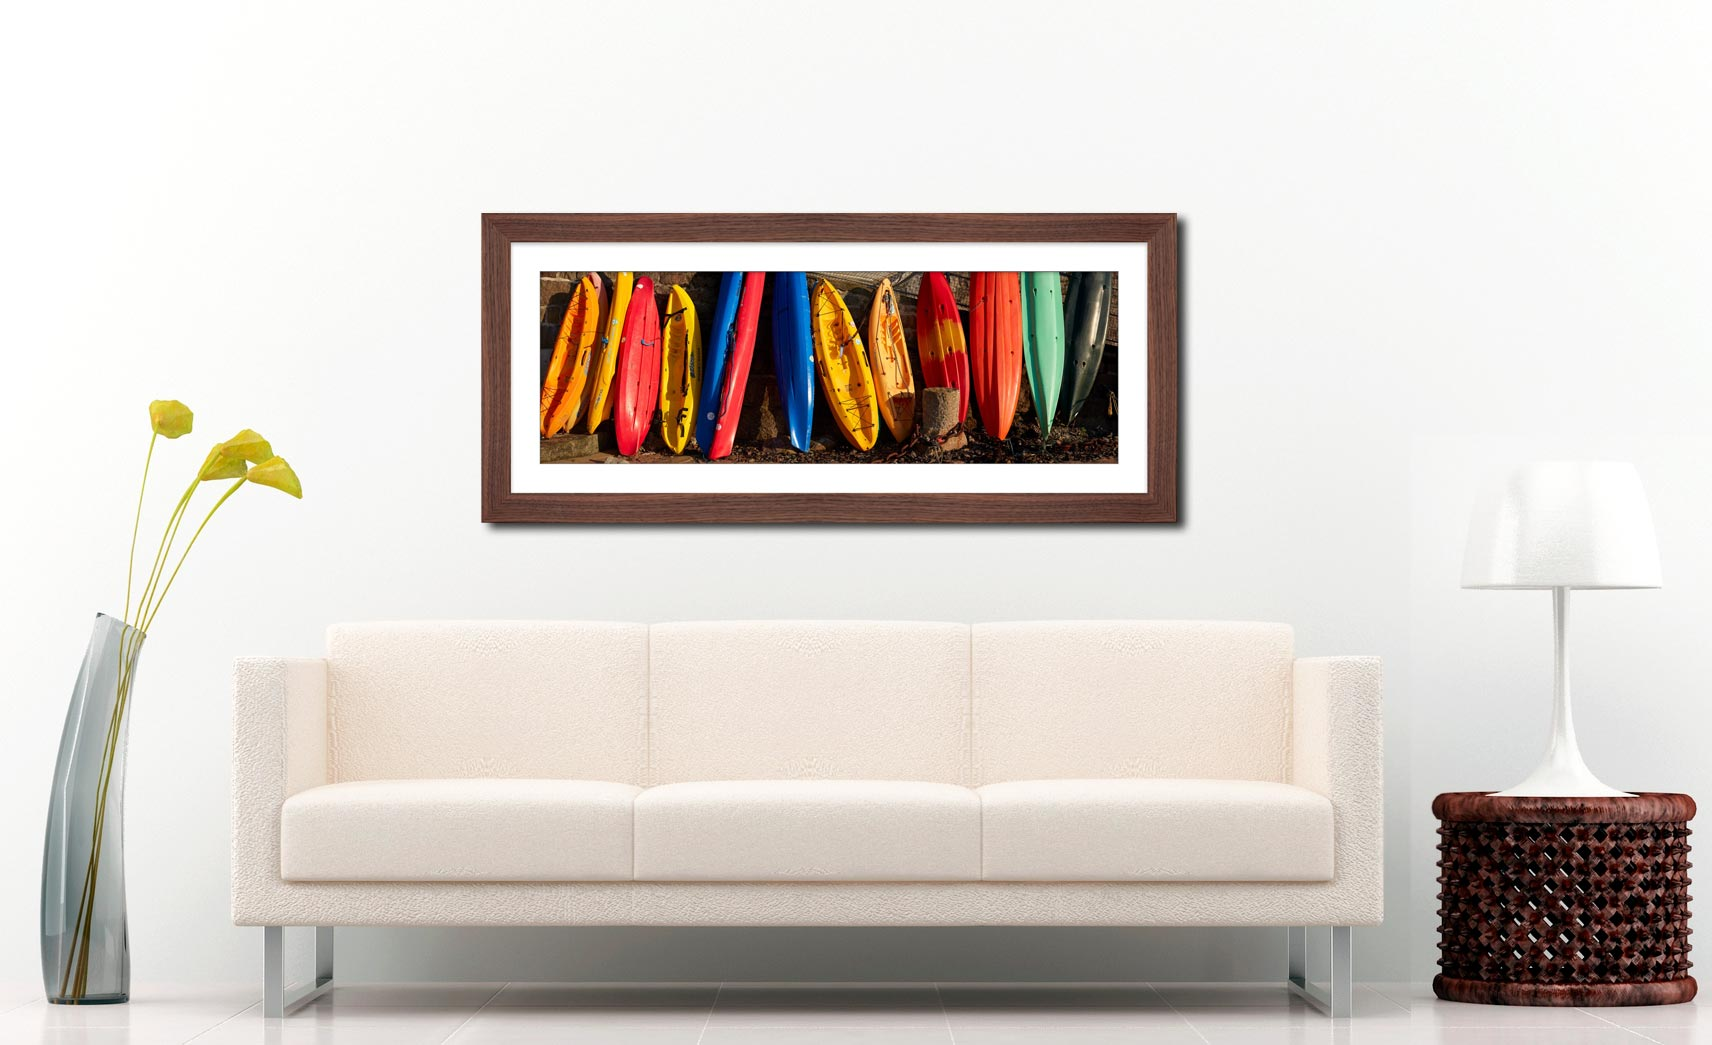 Colourful Kayaks at Mousehole - Framed Print with Mount on Wall